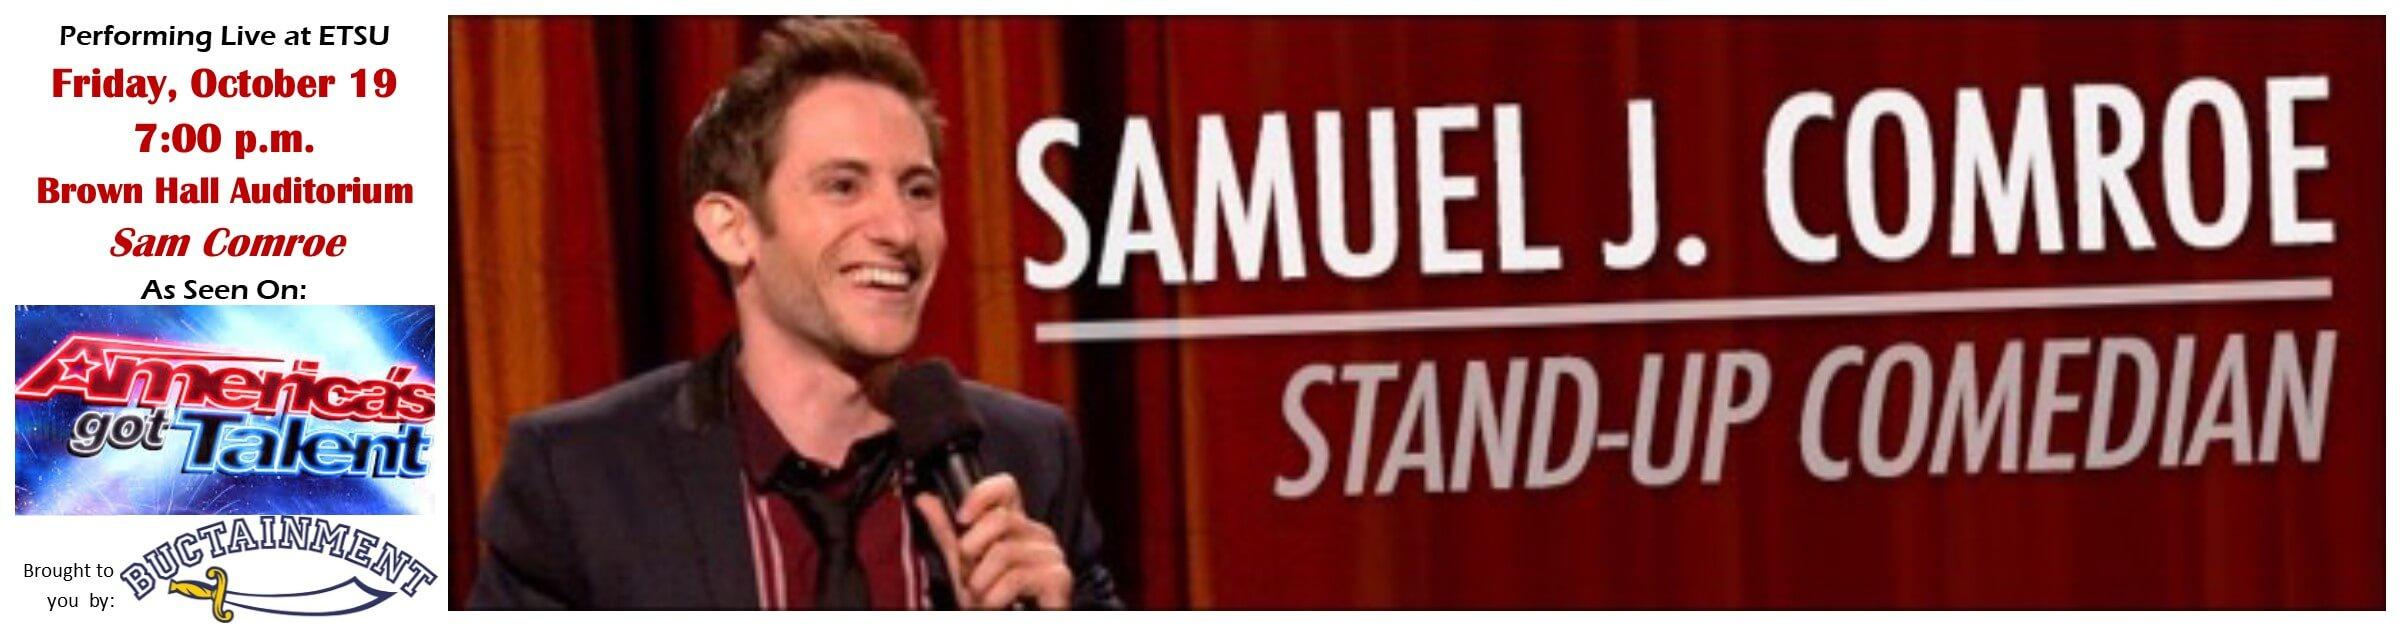 Stand-Up Comedian Samuel J. Comroe will be at ETSU October 19, 2018